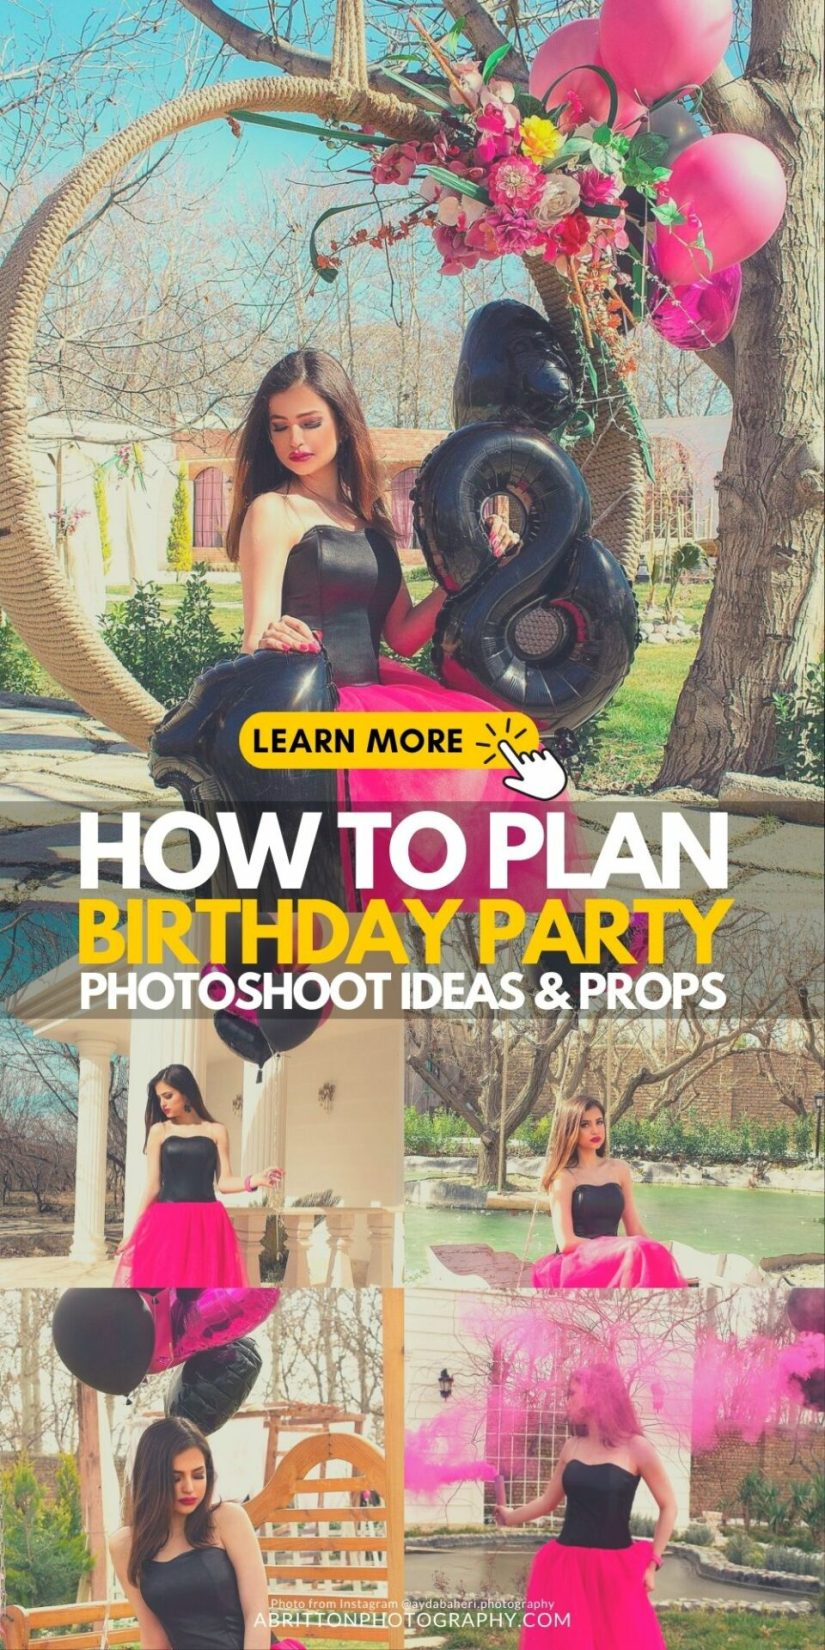 Girl Birthday Photoshoot Ideas and Poses - How to Plan a Birthday Party